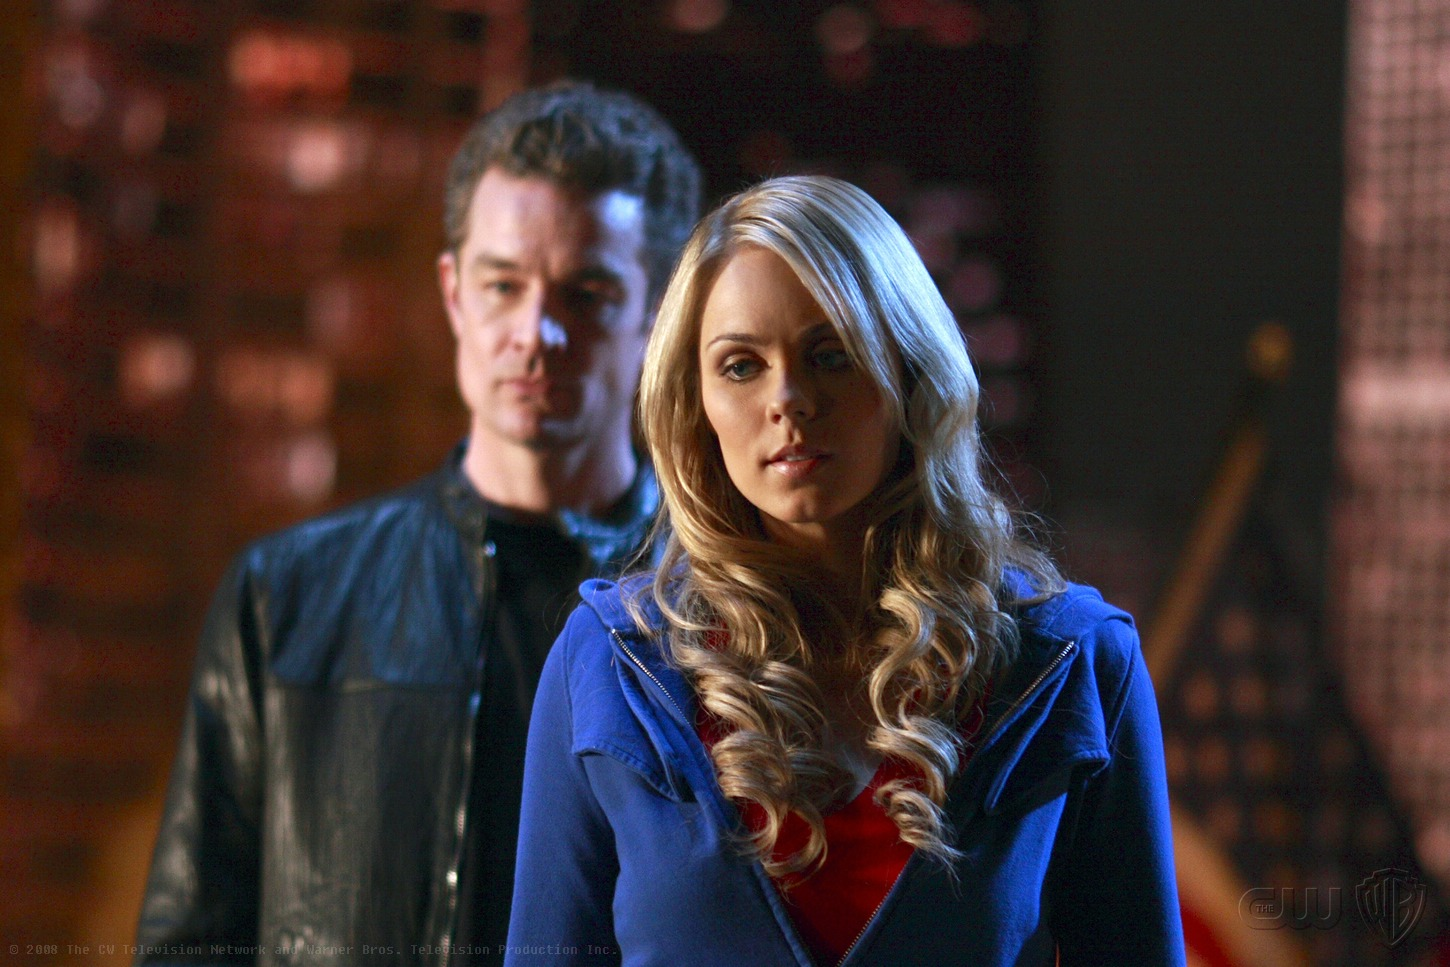 Smallville (TV Series) Episode: Veritas